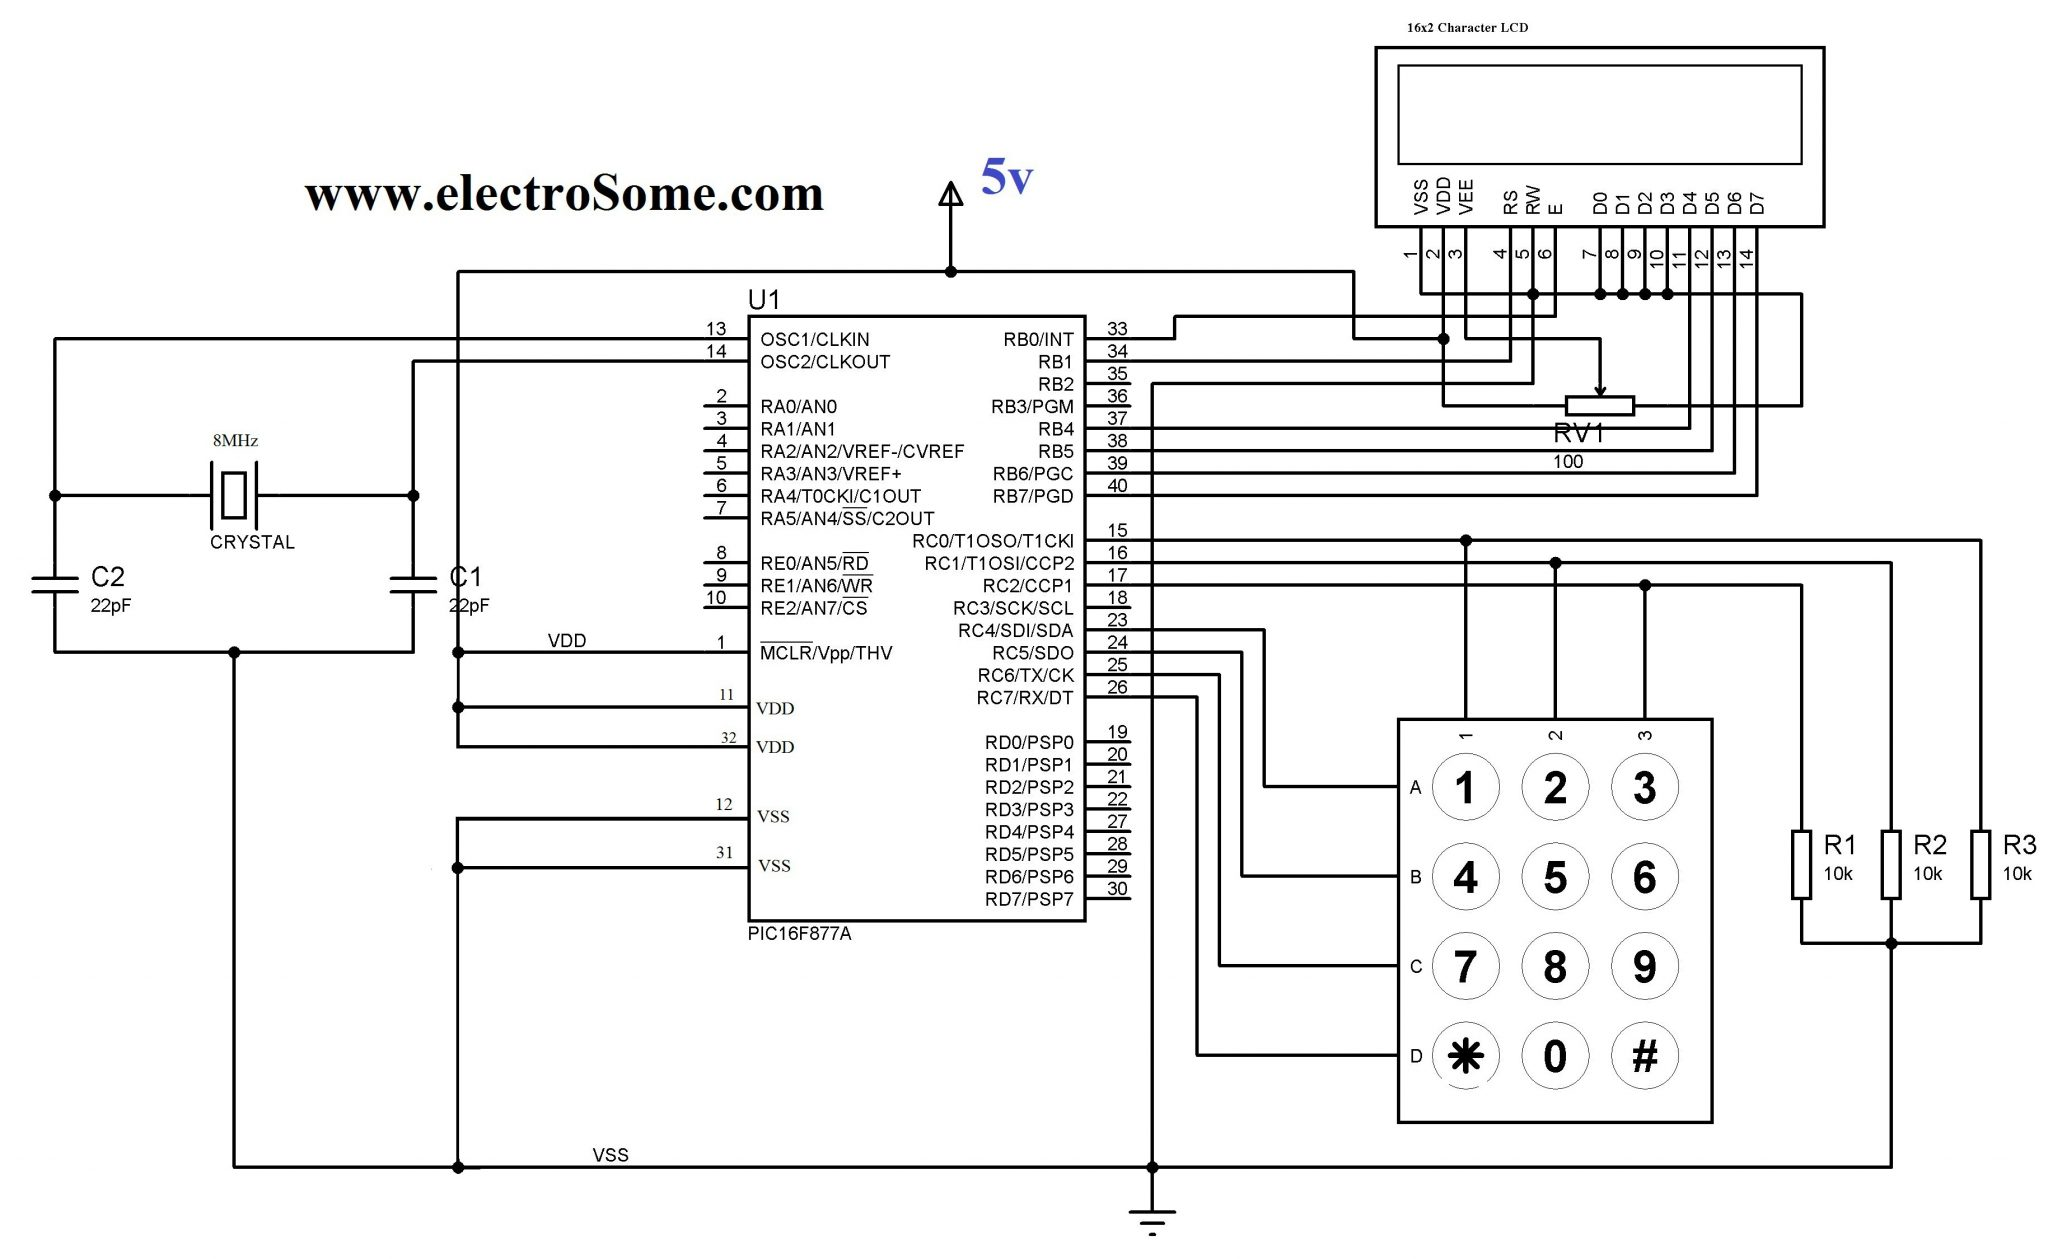 interfacing keypad pic microcontroller using mikroc library matrix keypad mikroc library circuit diagram